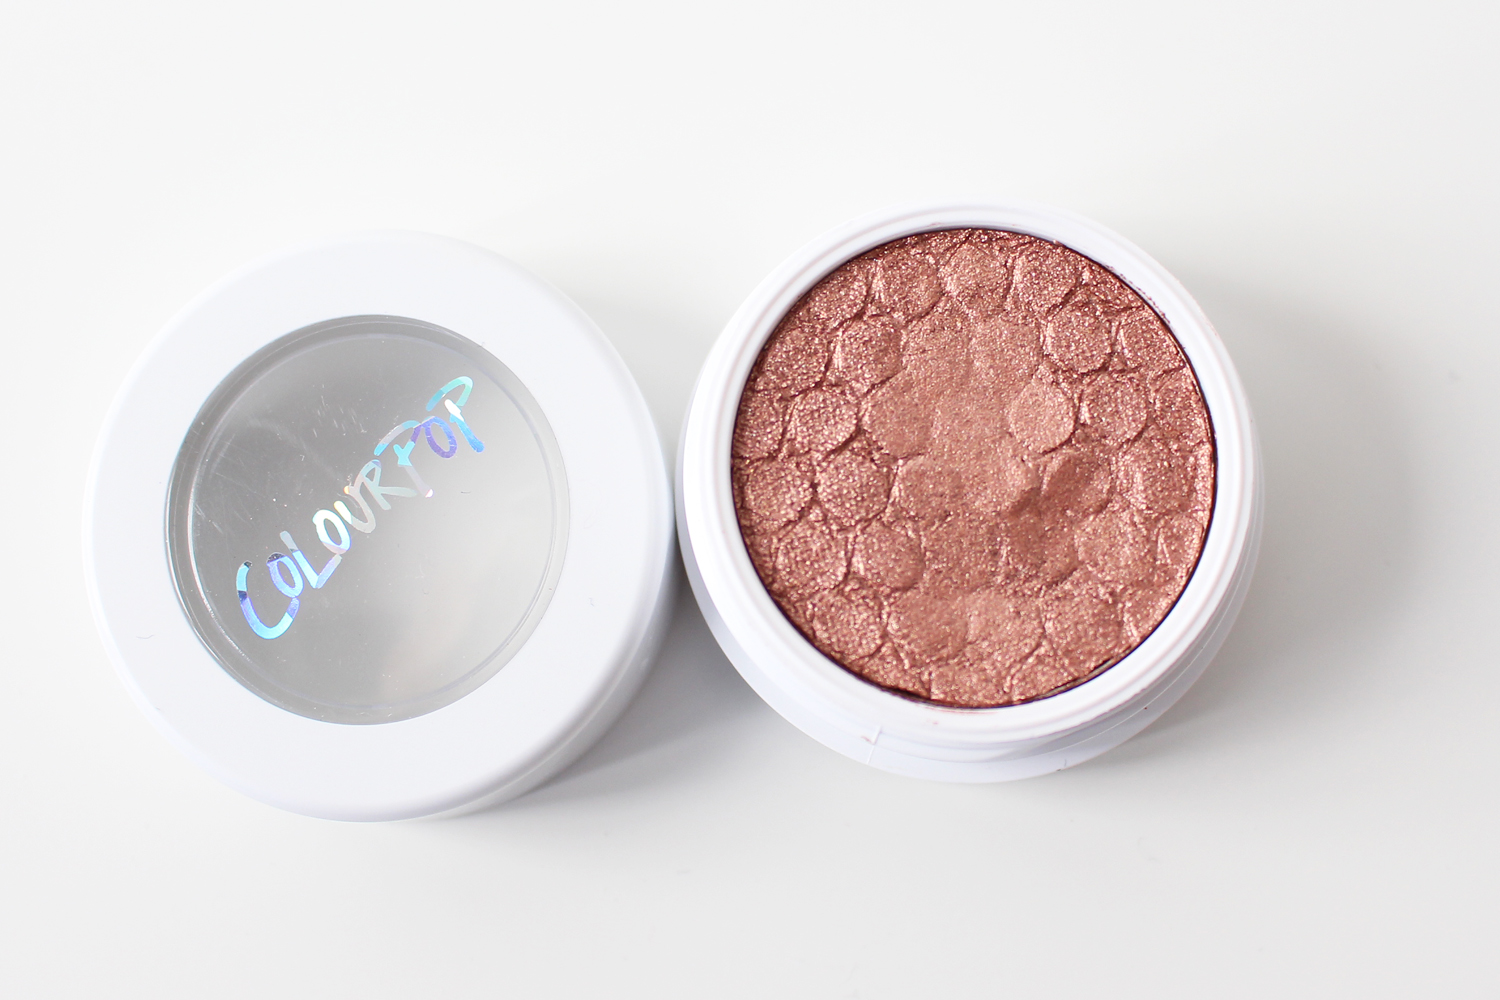 colourpop super shock shadow weenie